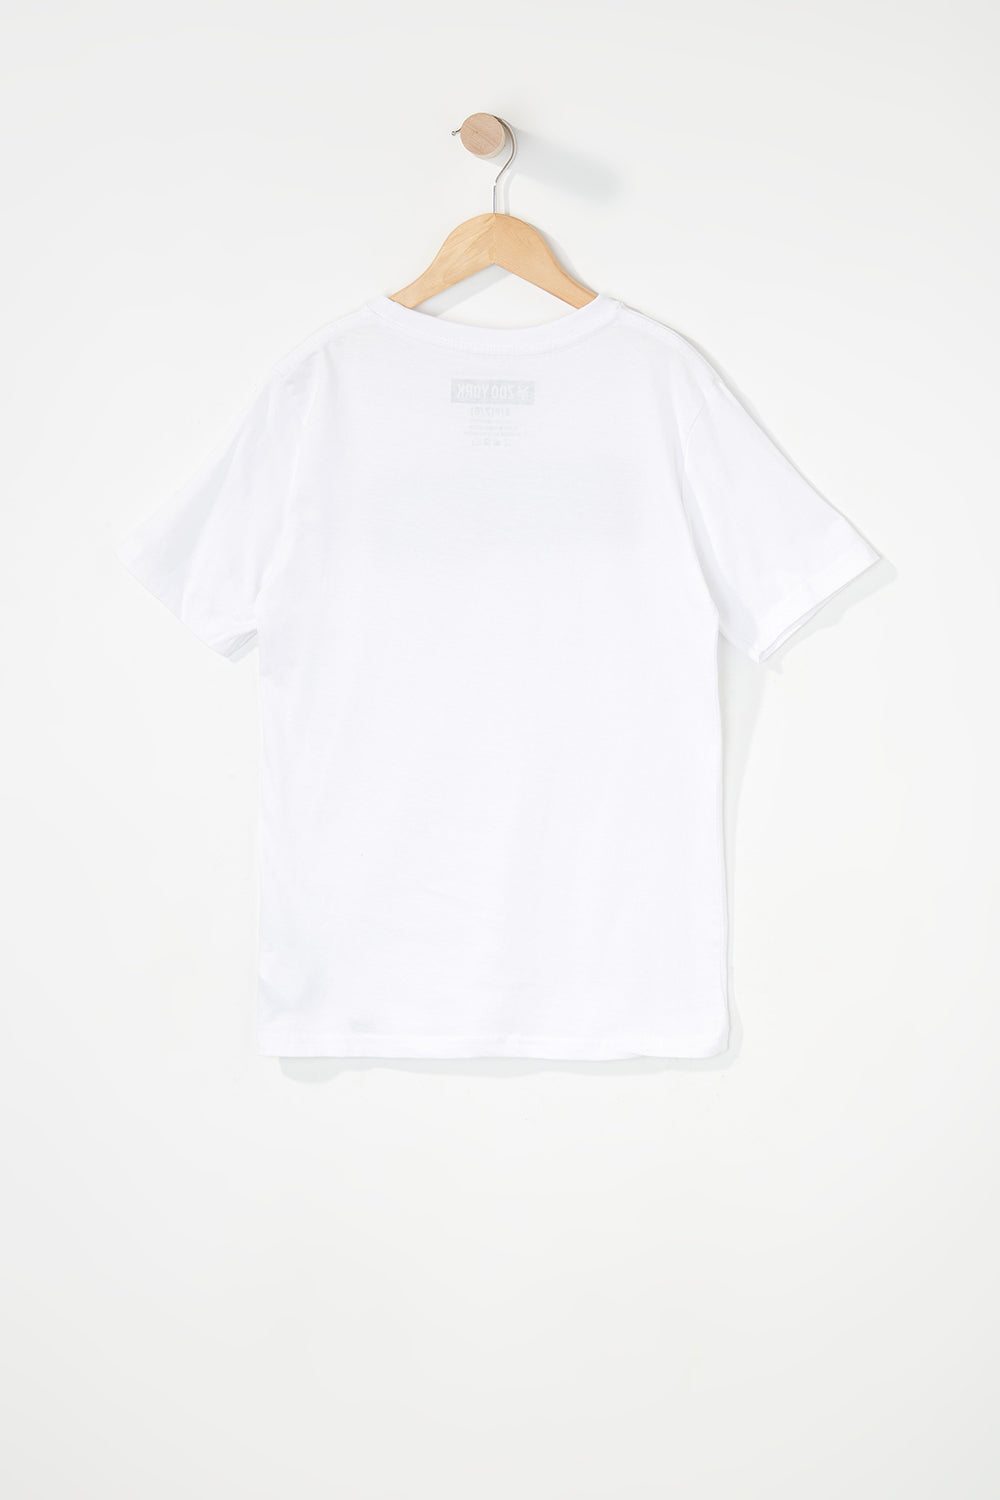 Zoo York Boys Classic Logo T-Shirt White